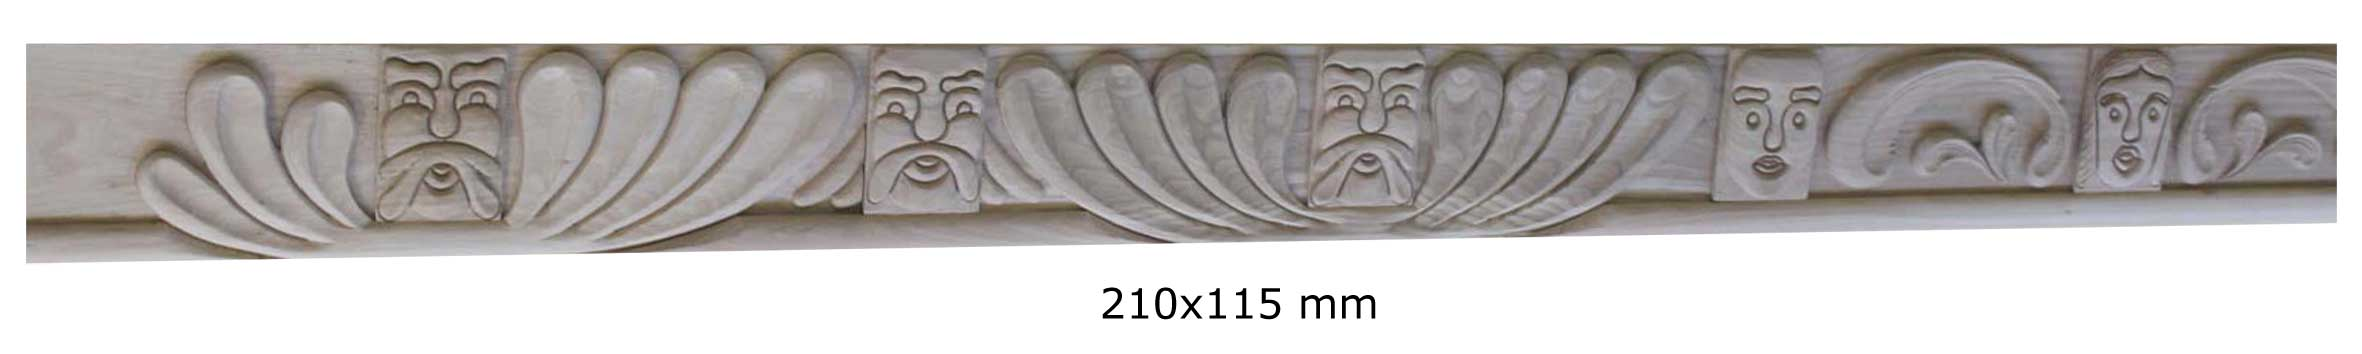 Ornamental moulding with 13 masks in solid oak